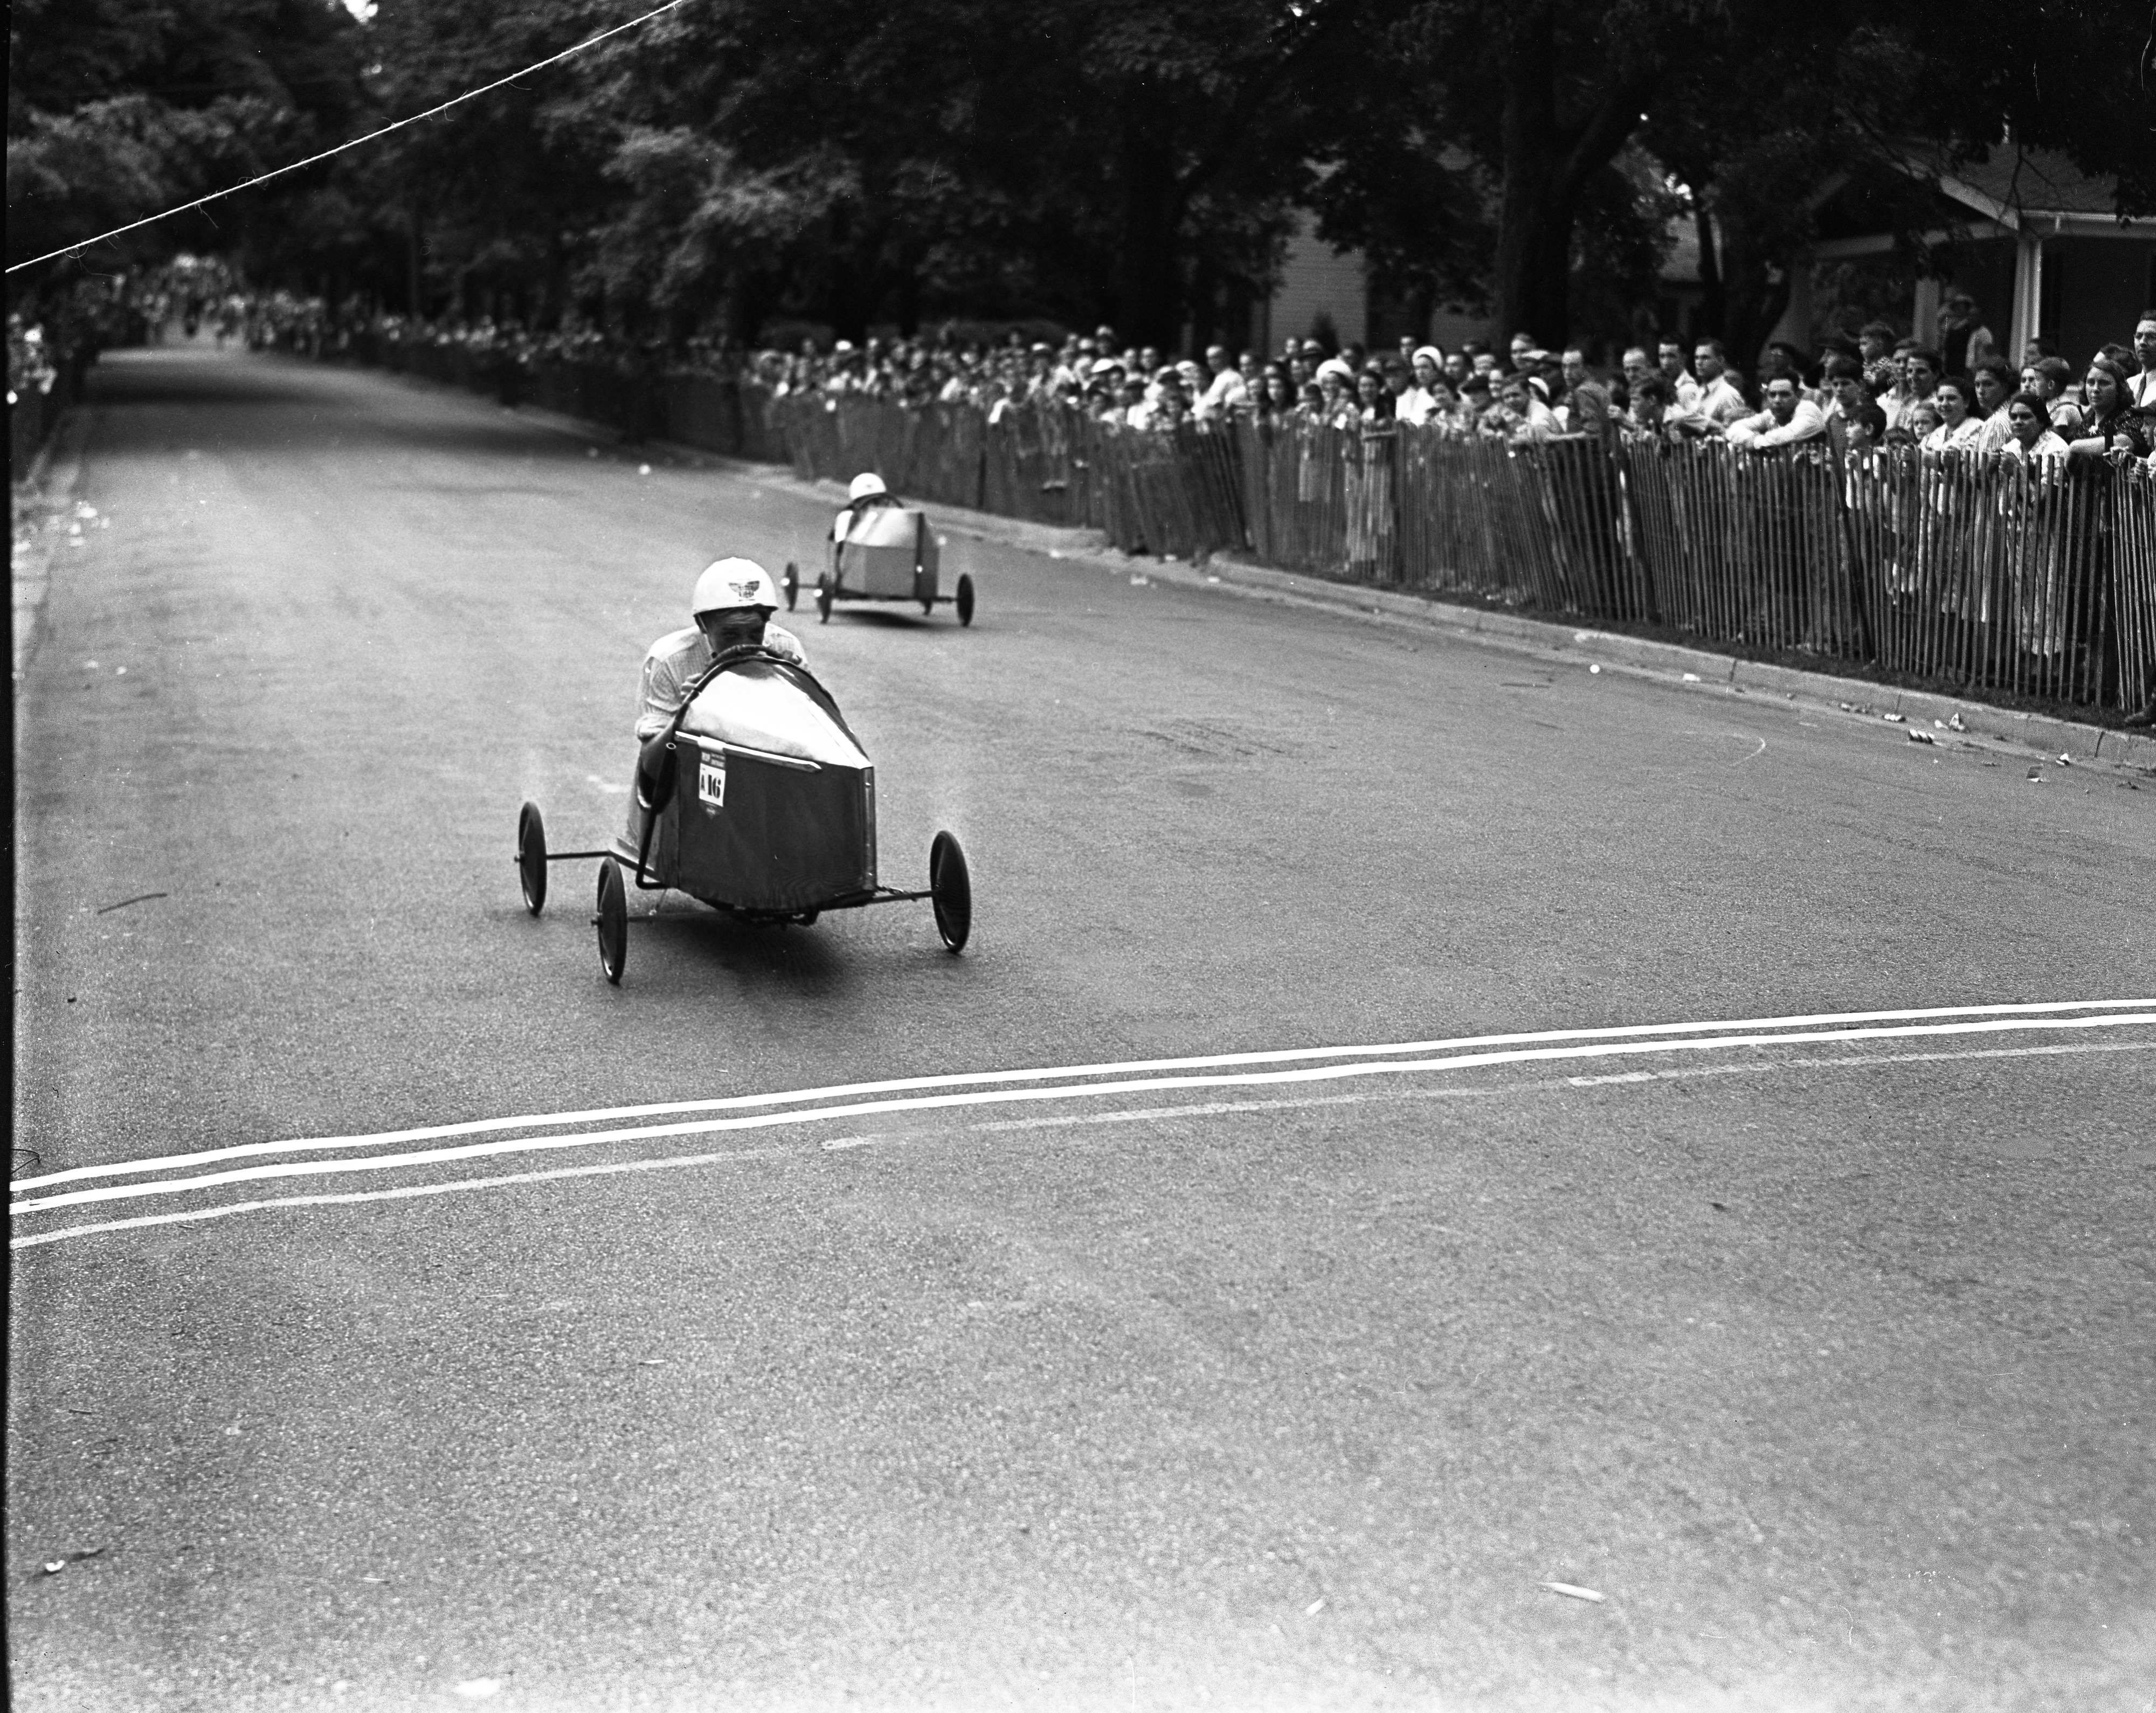 Dexter's Robert Moore wins a heat in Ann Arbor's Soap Box Derby, July 1939 image